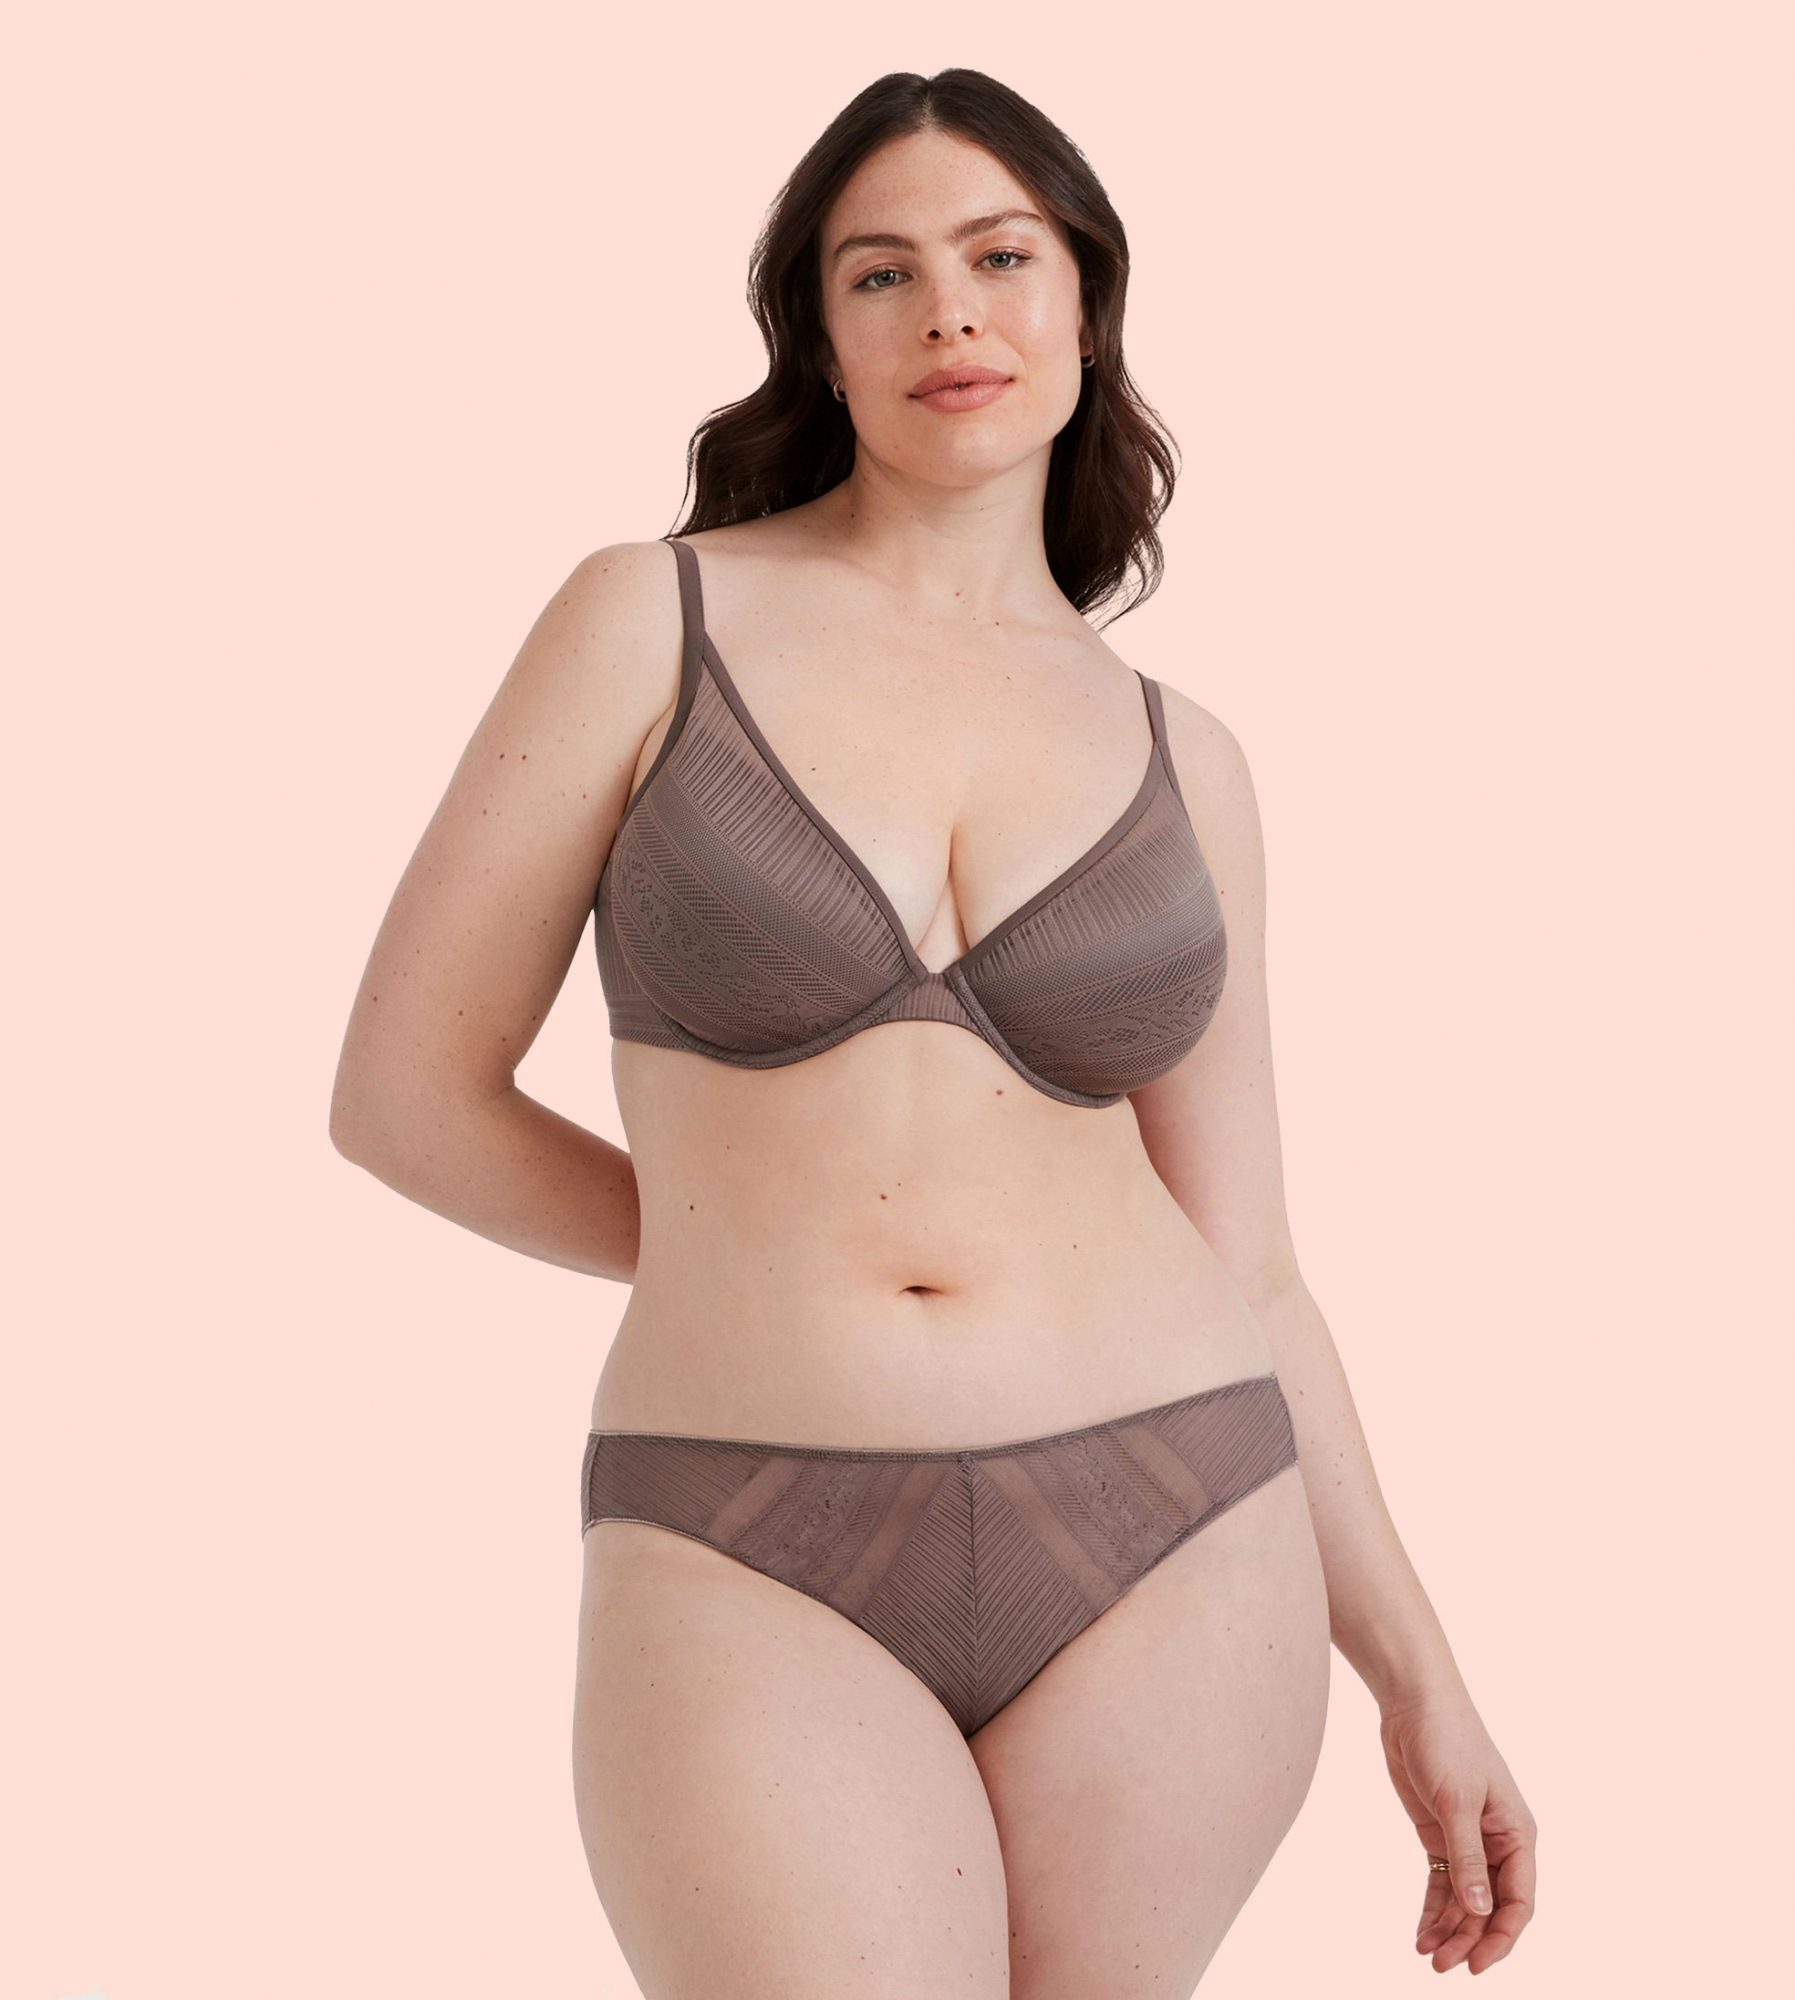 Plus Size Bras - Lead